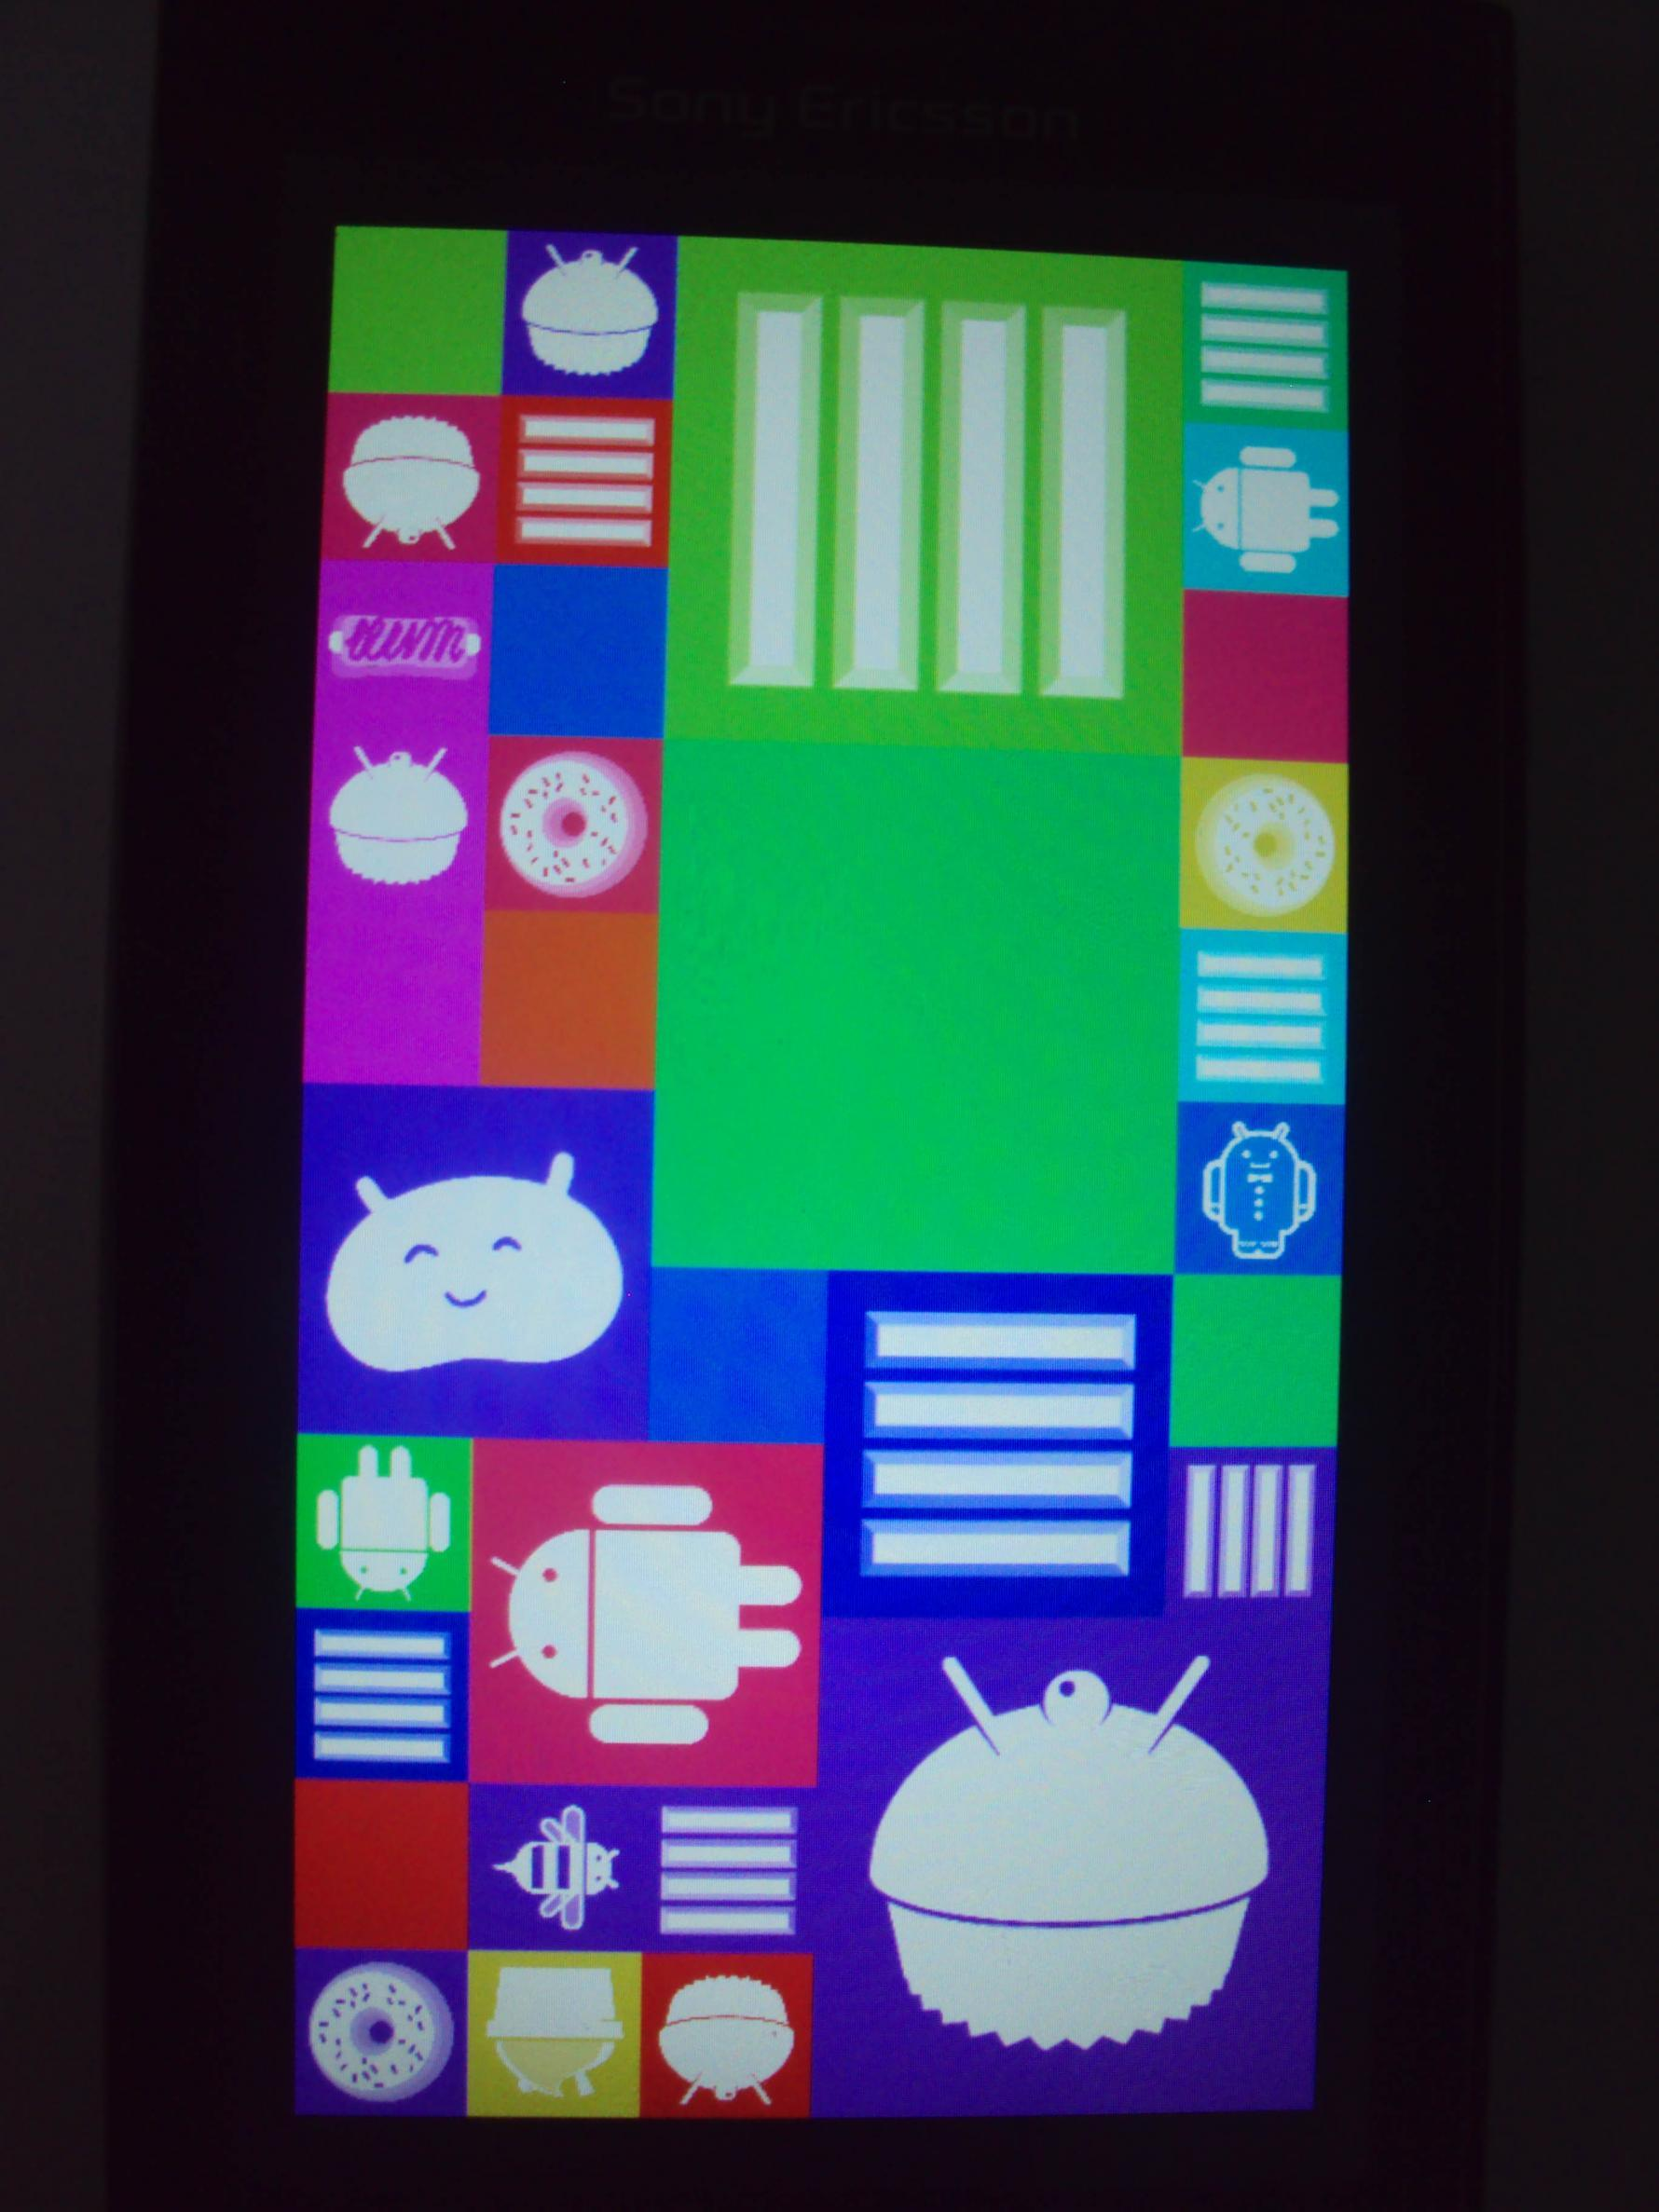 Xperia X10 KitKat About Phone